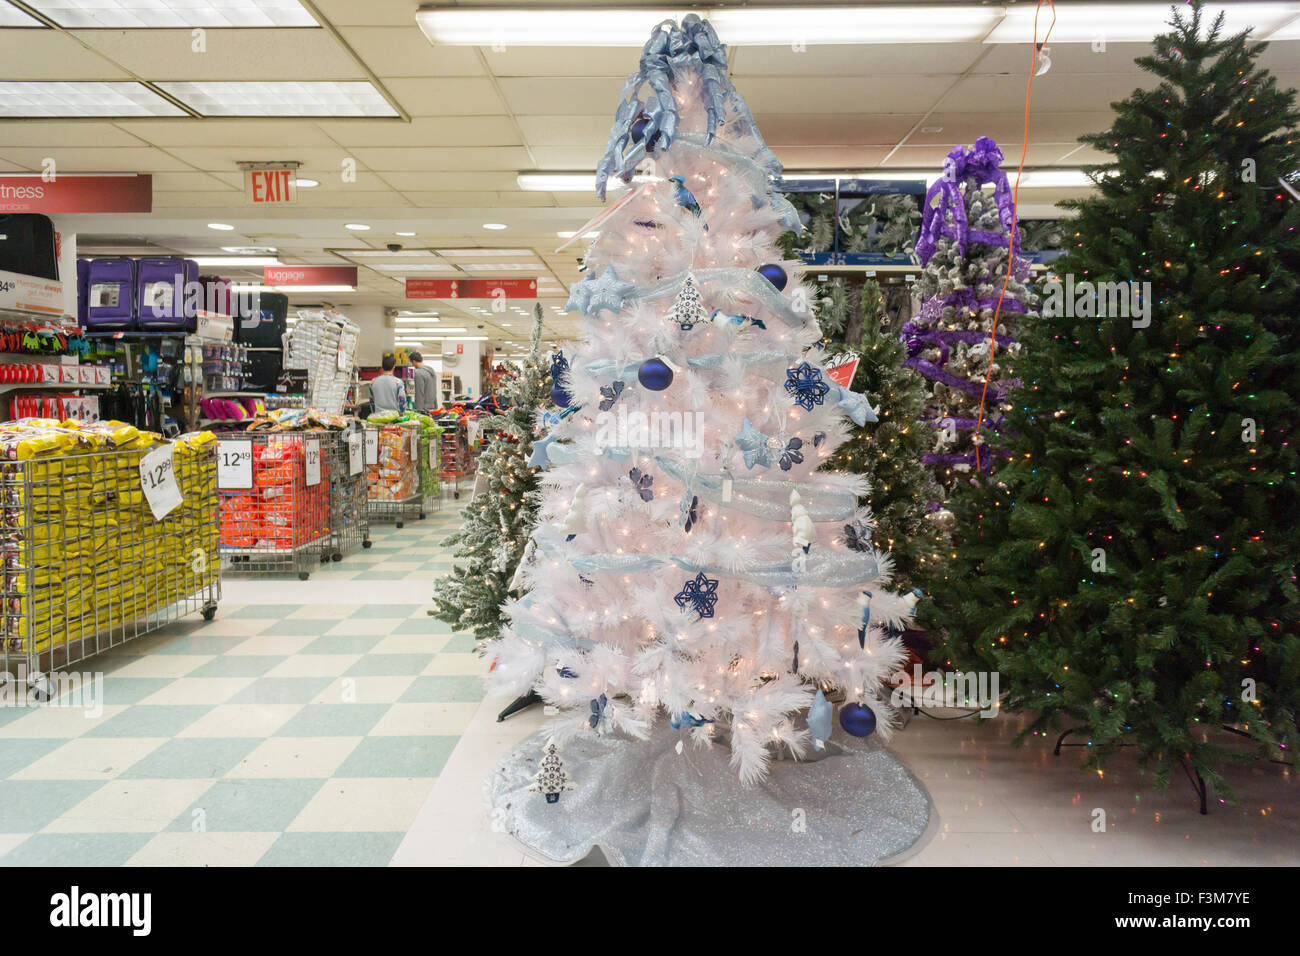 Is Kmart Open On Christmas Day.Seasonal Christmas Display In A Kmart Store In New York On